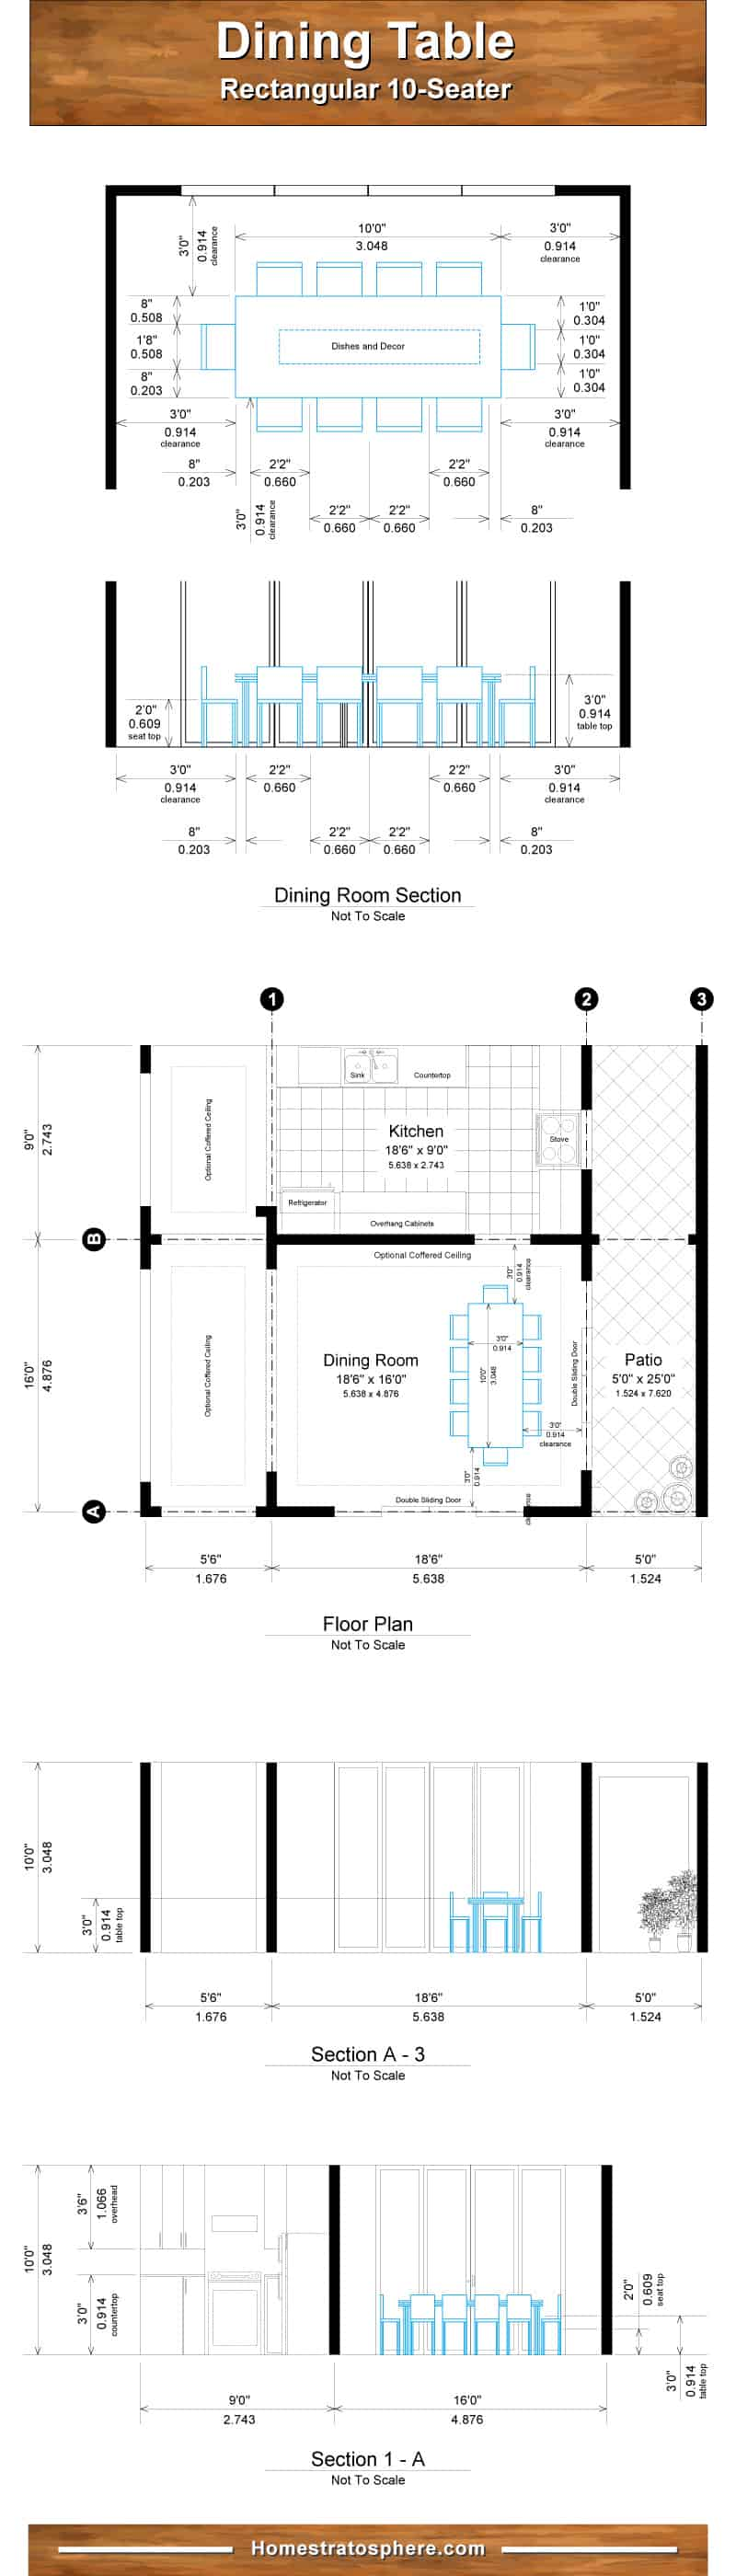 Chart diagram setting out the dining room and table dimensions for 10 people